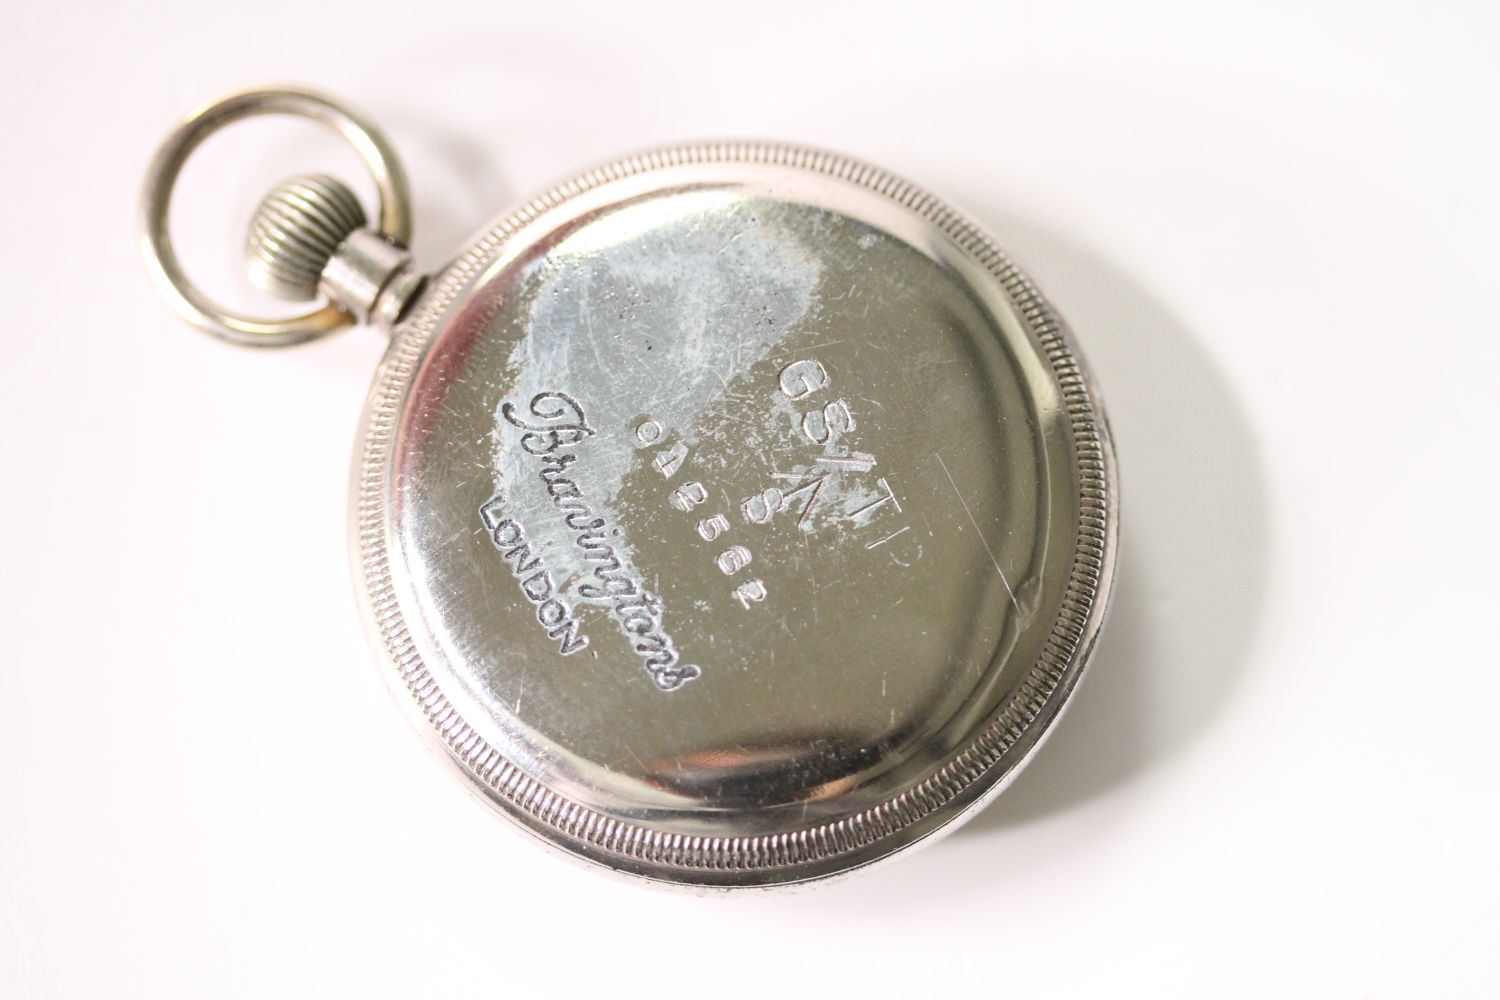 VINTAGE REVUE THOMMEN G.S.T.P MILITARY POCKET WATCH SERVICED, circular cream dial with arabic - Image 2 of 4